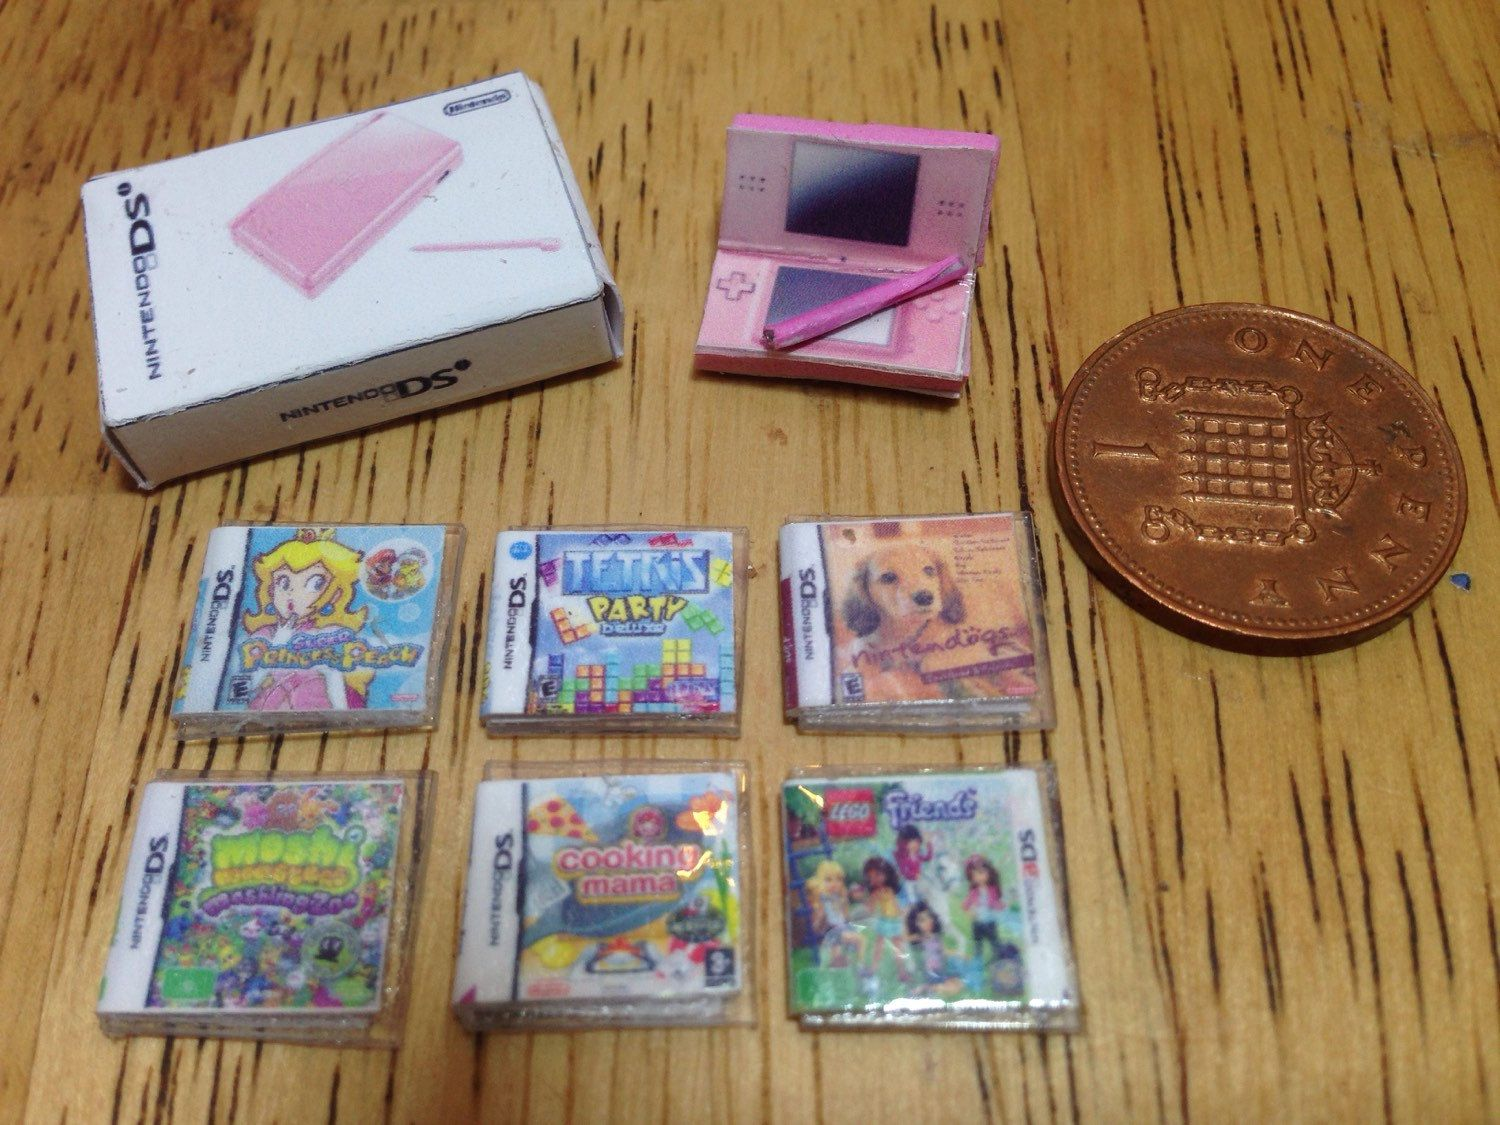 Dolls house handmade miniature nintendo ds bundle (girls) - pink ds console, console box and 6 tiny ds games 1/12 scale #miniaturedolls